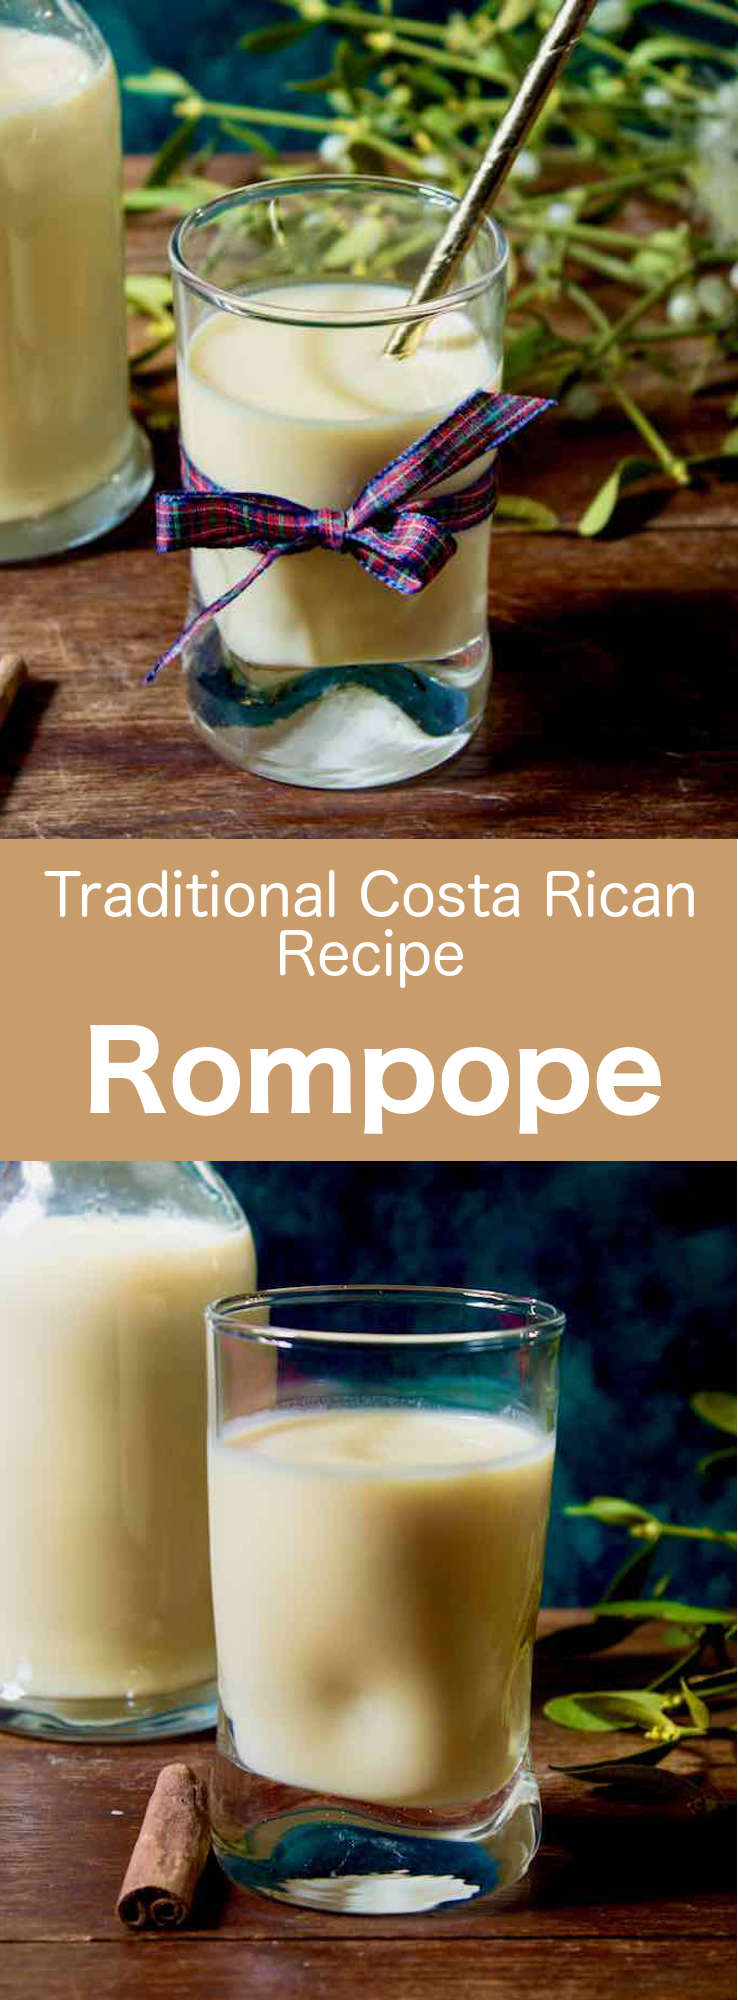 Rompope is a traditional beverage similar to eggnog that is popular in El Salvador, Honduras, Costa Rica, Ecuador, Nicaragua, Guatemala, Belize and Mexico. #CostaRica #CostaRicanCuisine #CostaRicanFood #CostaRicanRecipe #WorldCuisine #196flavors